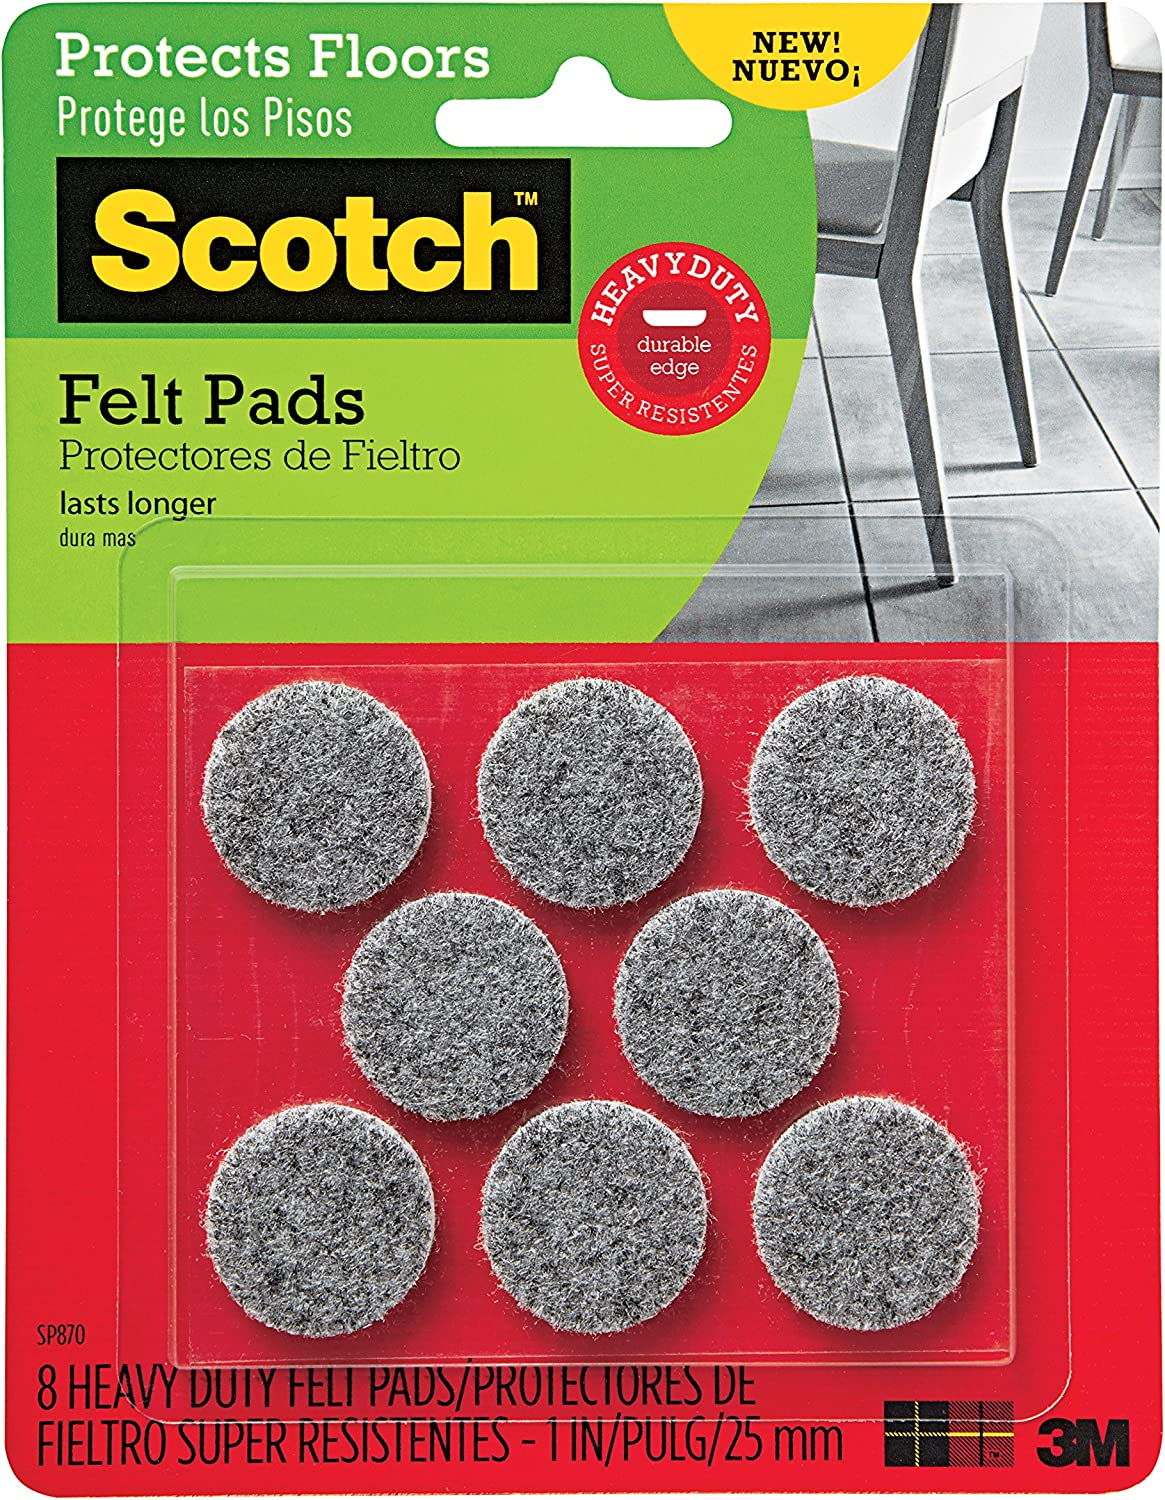 Scotch Brand Heavy Duty Felt Pads, By 3M, Protectors, Round, Gray, 1-Inch Diameter, 8 Pads/Pack, 6-Packs (48 Total)